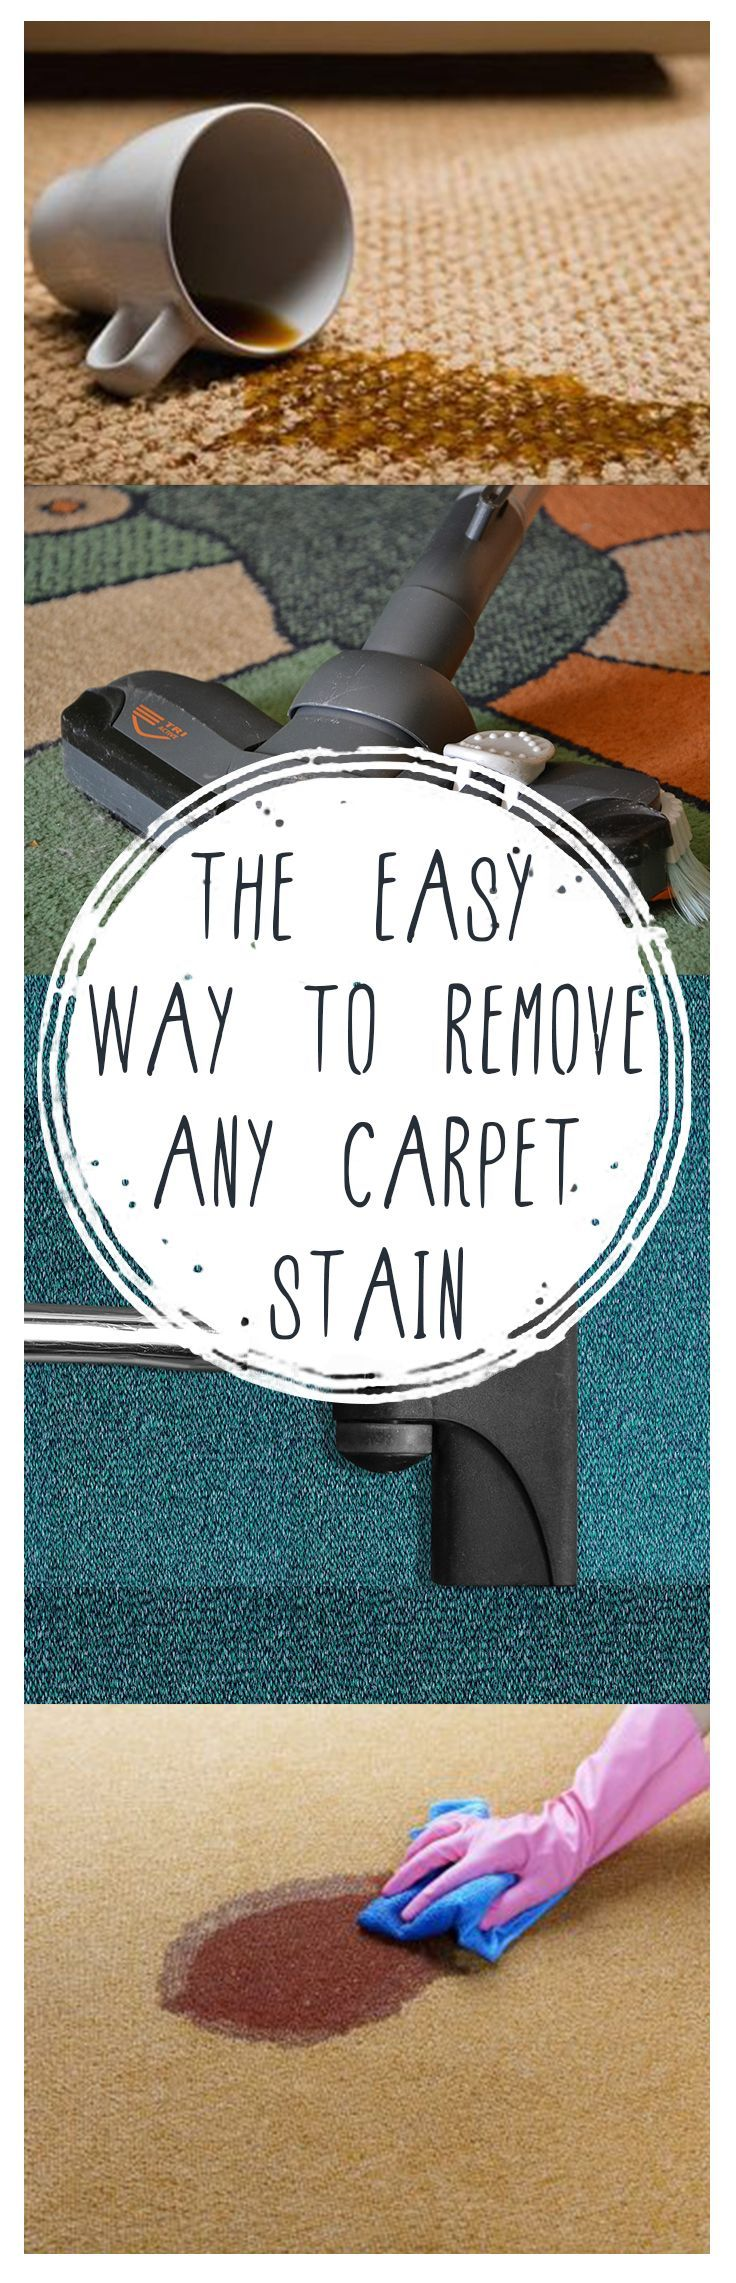 Carpet stains, removing carpet stains, how to remove carpet stains, popular  pin